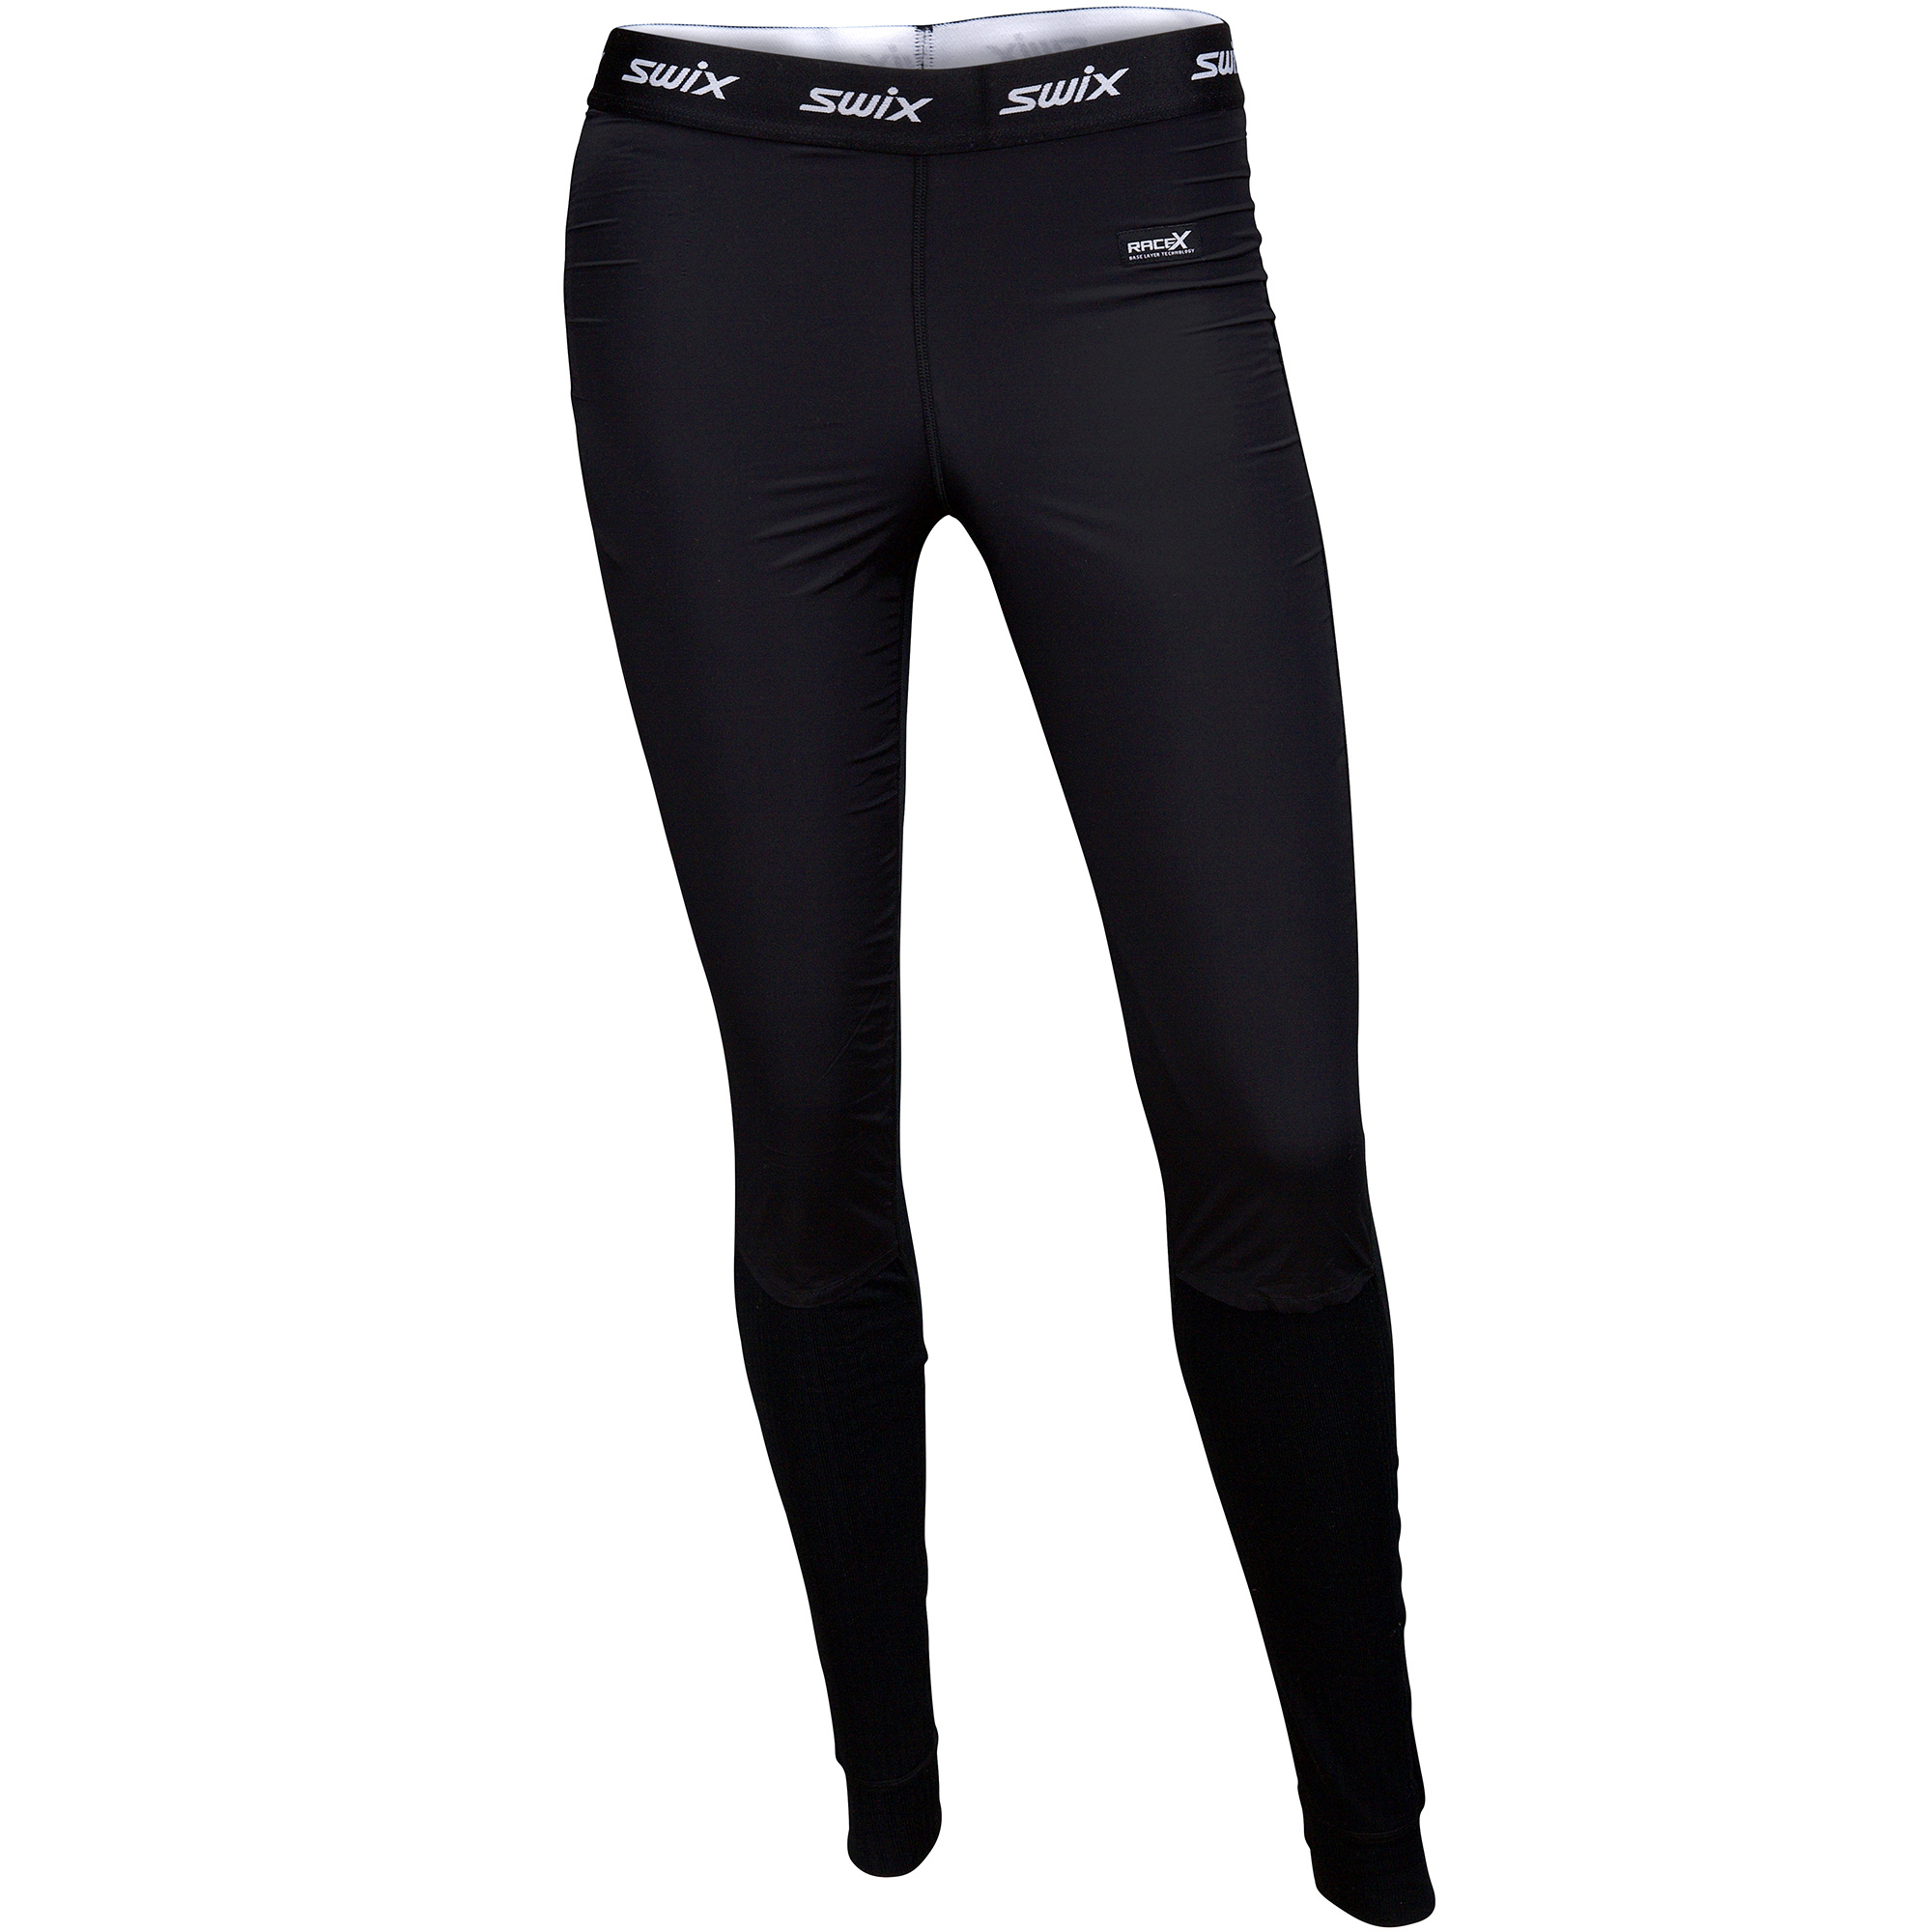 Swix Women's RaceX Bodywear Pants Wind